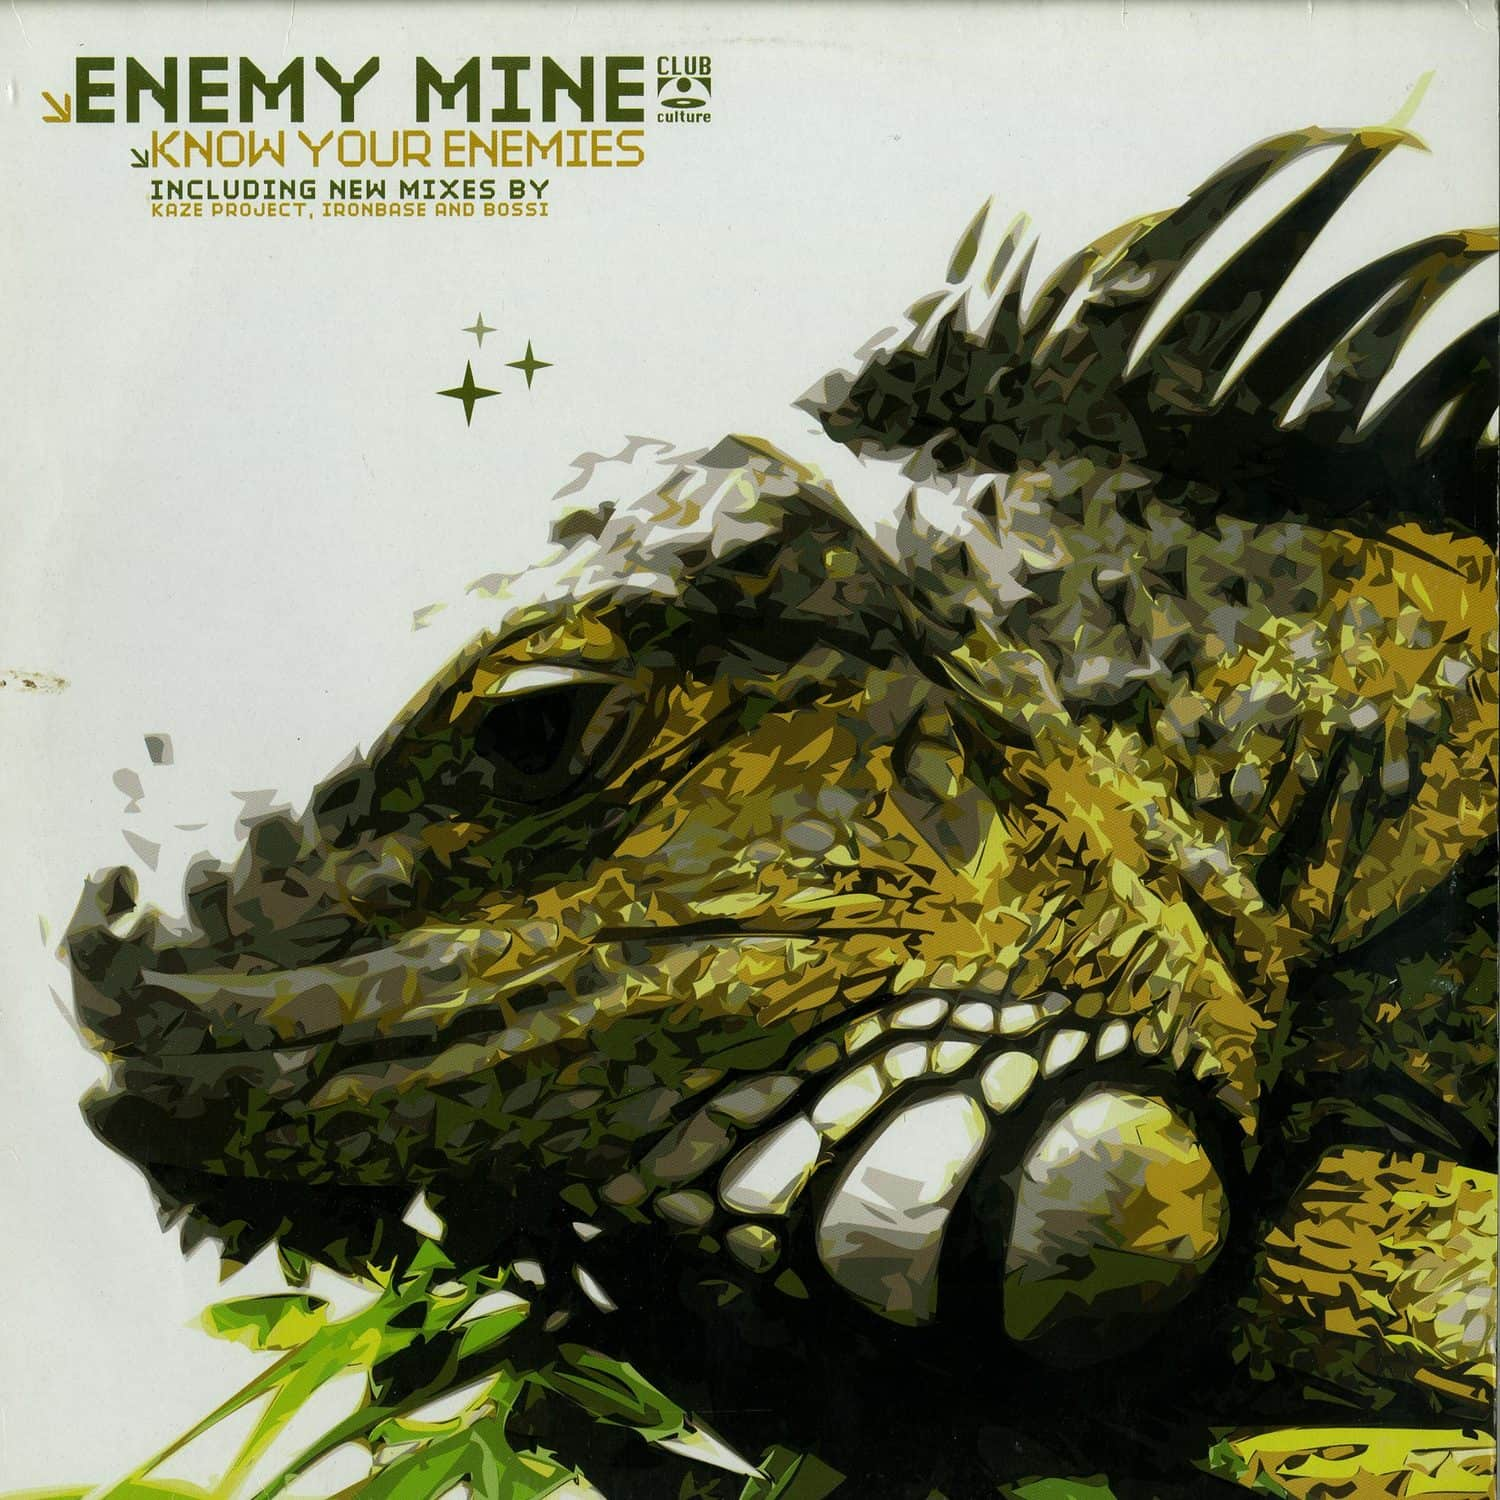 Enemy Mine - KNO WYOUR ENEMIES